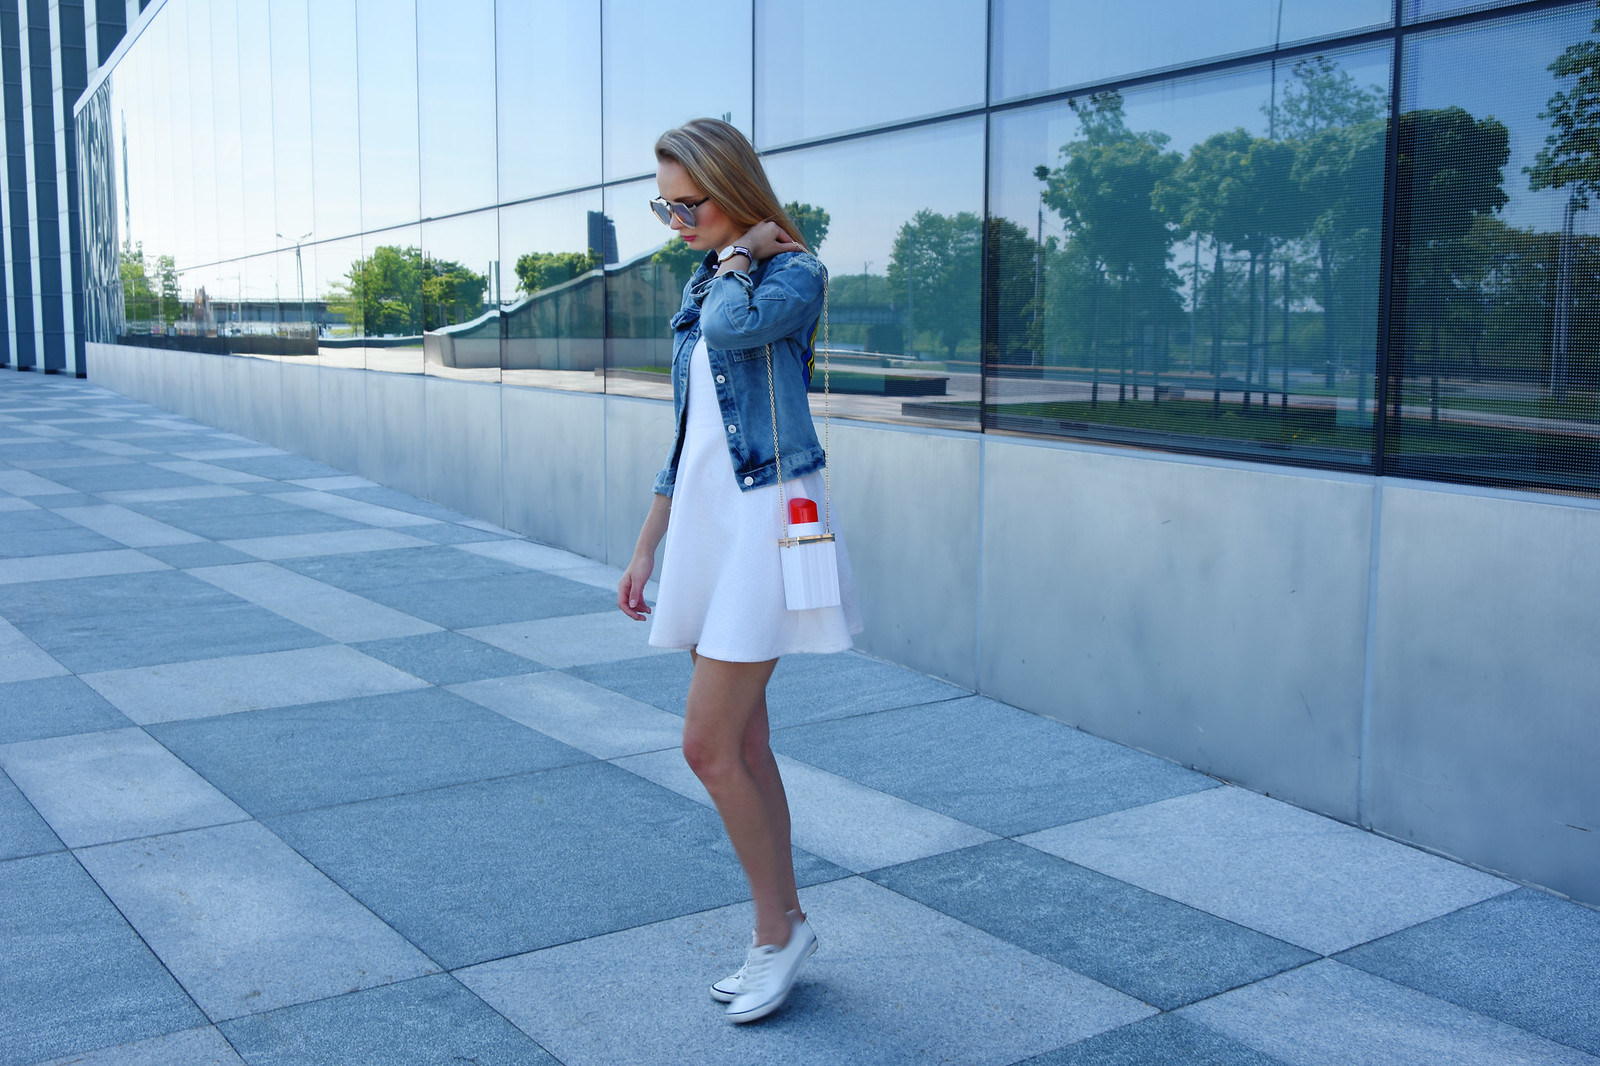 Styling a denim jacket